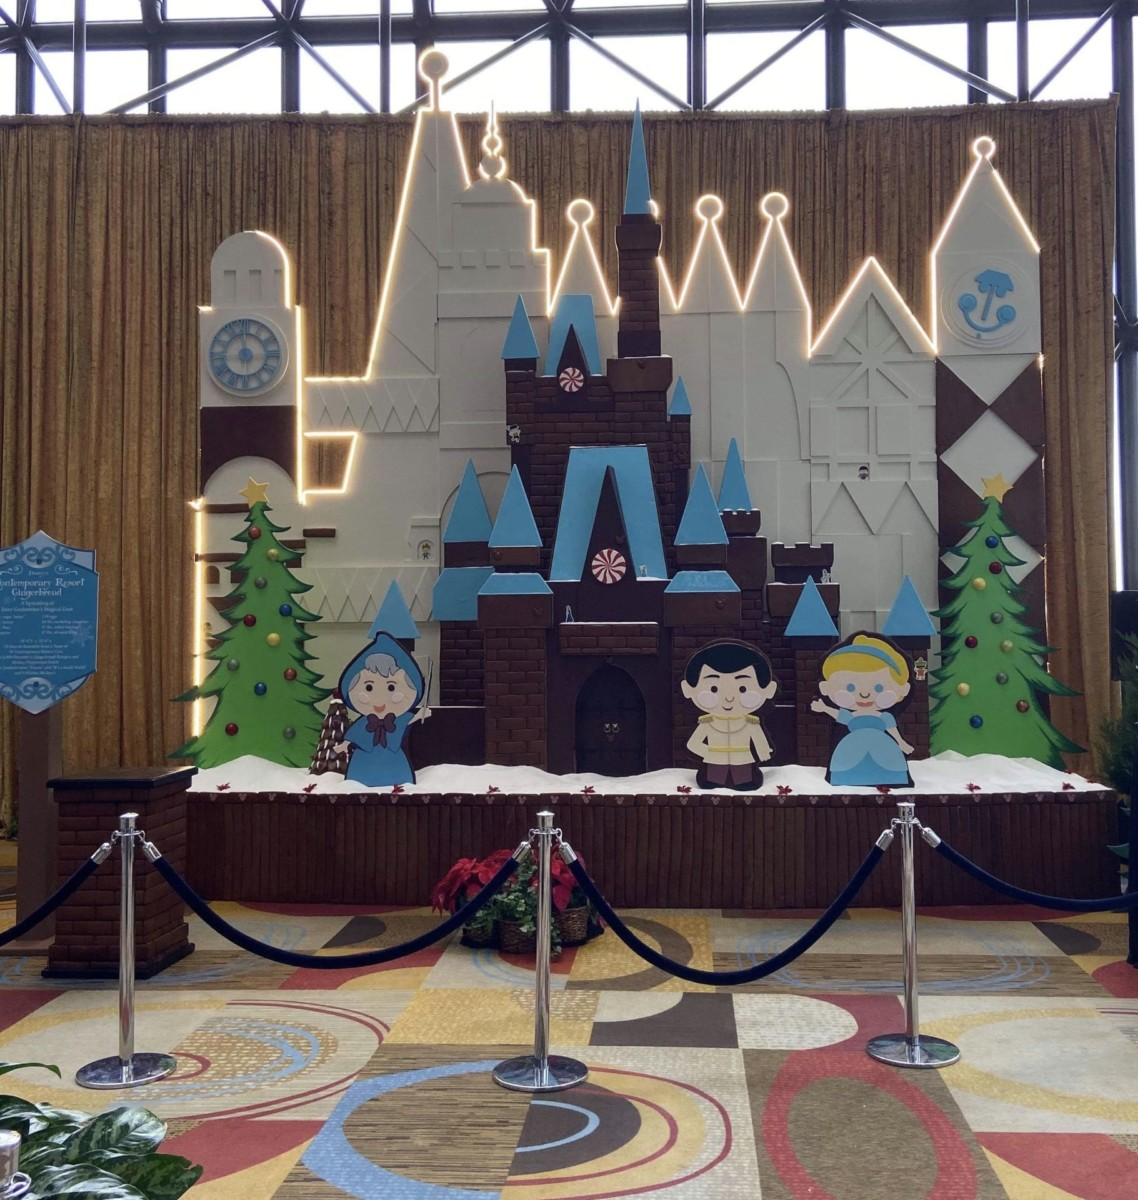 The Gingerbread Display is up at Disney's Contemporary Resort! #disneyholidays 1